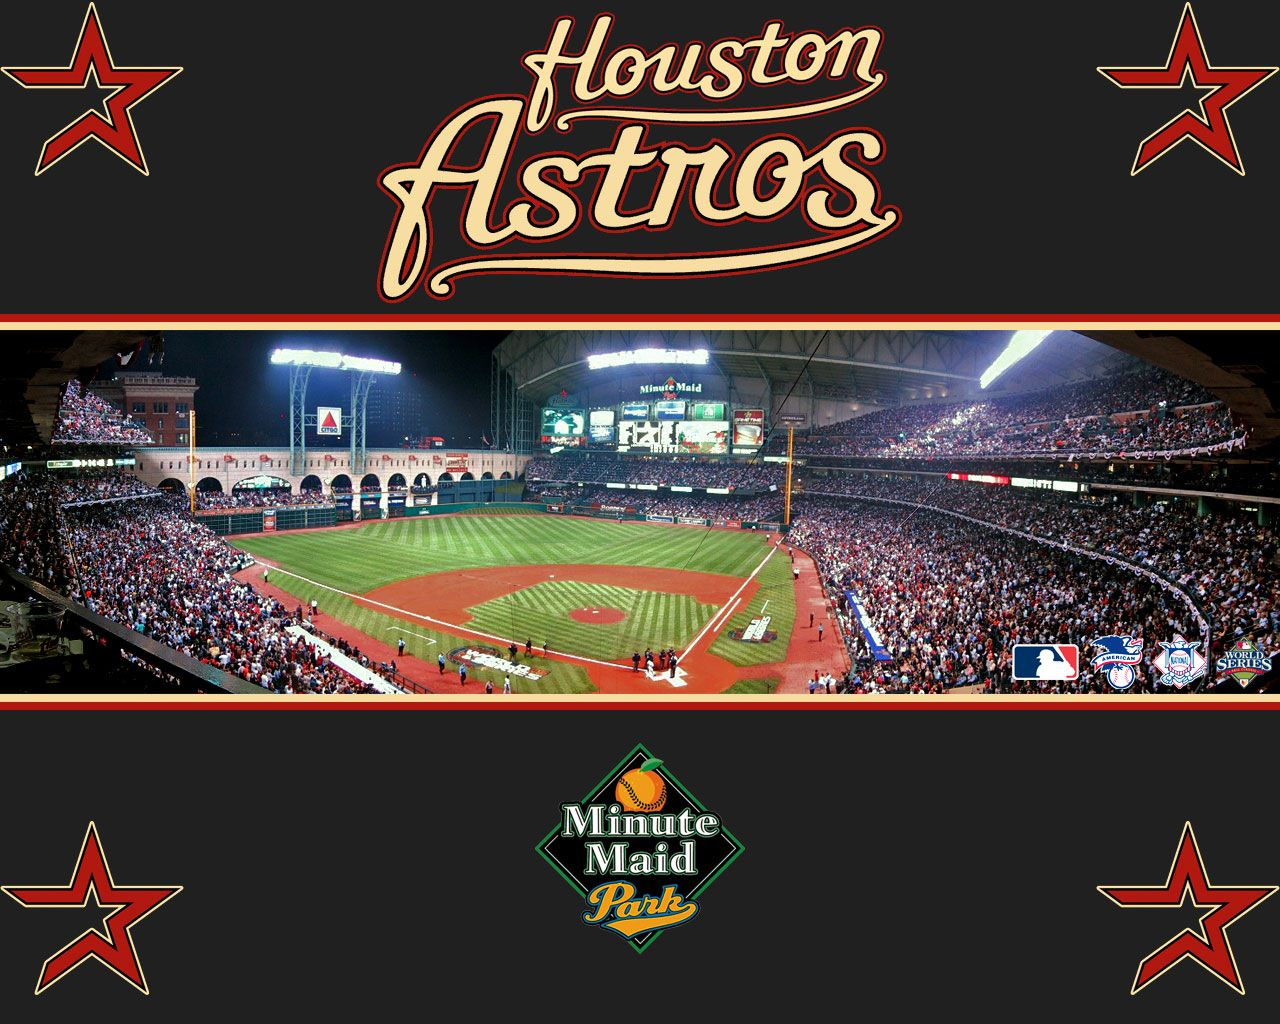 Google Image Result For Http Baseball Wallpapers Net Wallpapers Houston Astro Minute Maid Park Houston Astros Astros